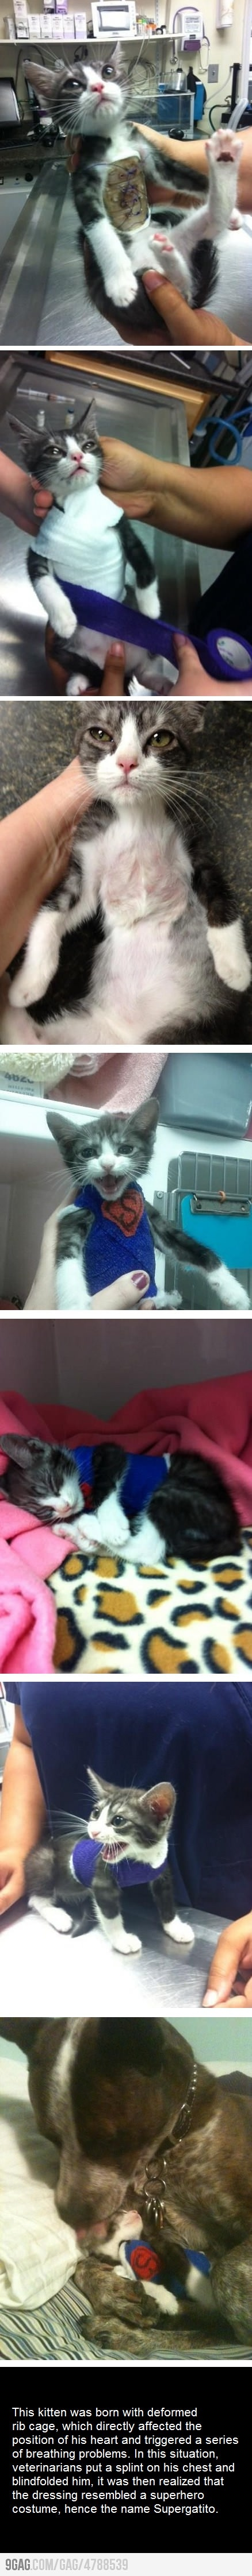 So cute.: Cats, Sweet, It S Supergatito, Poor Kitty, Baby, Dog, Animal